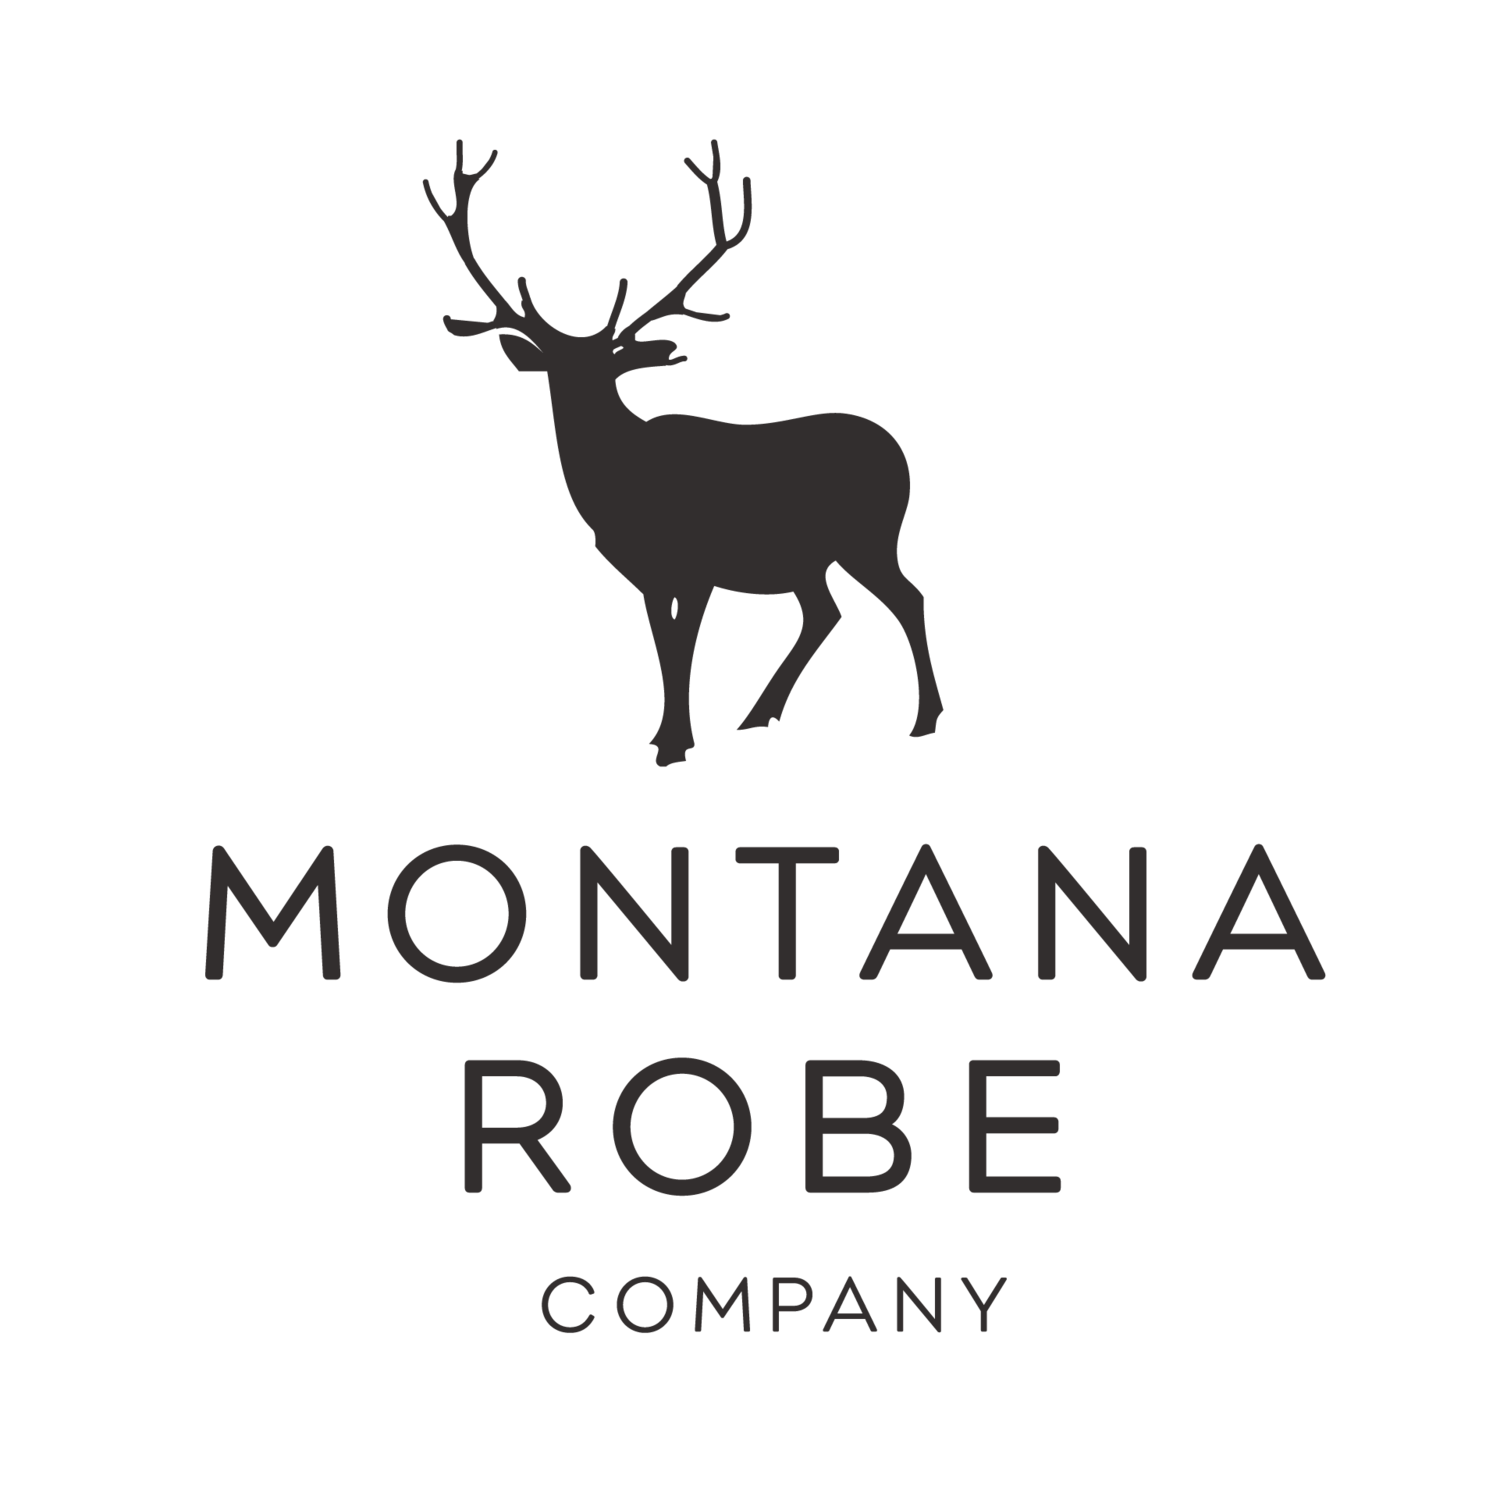 The Montana Robe Company